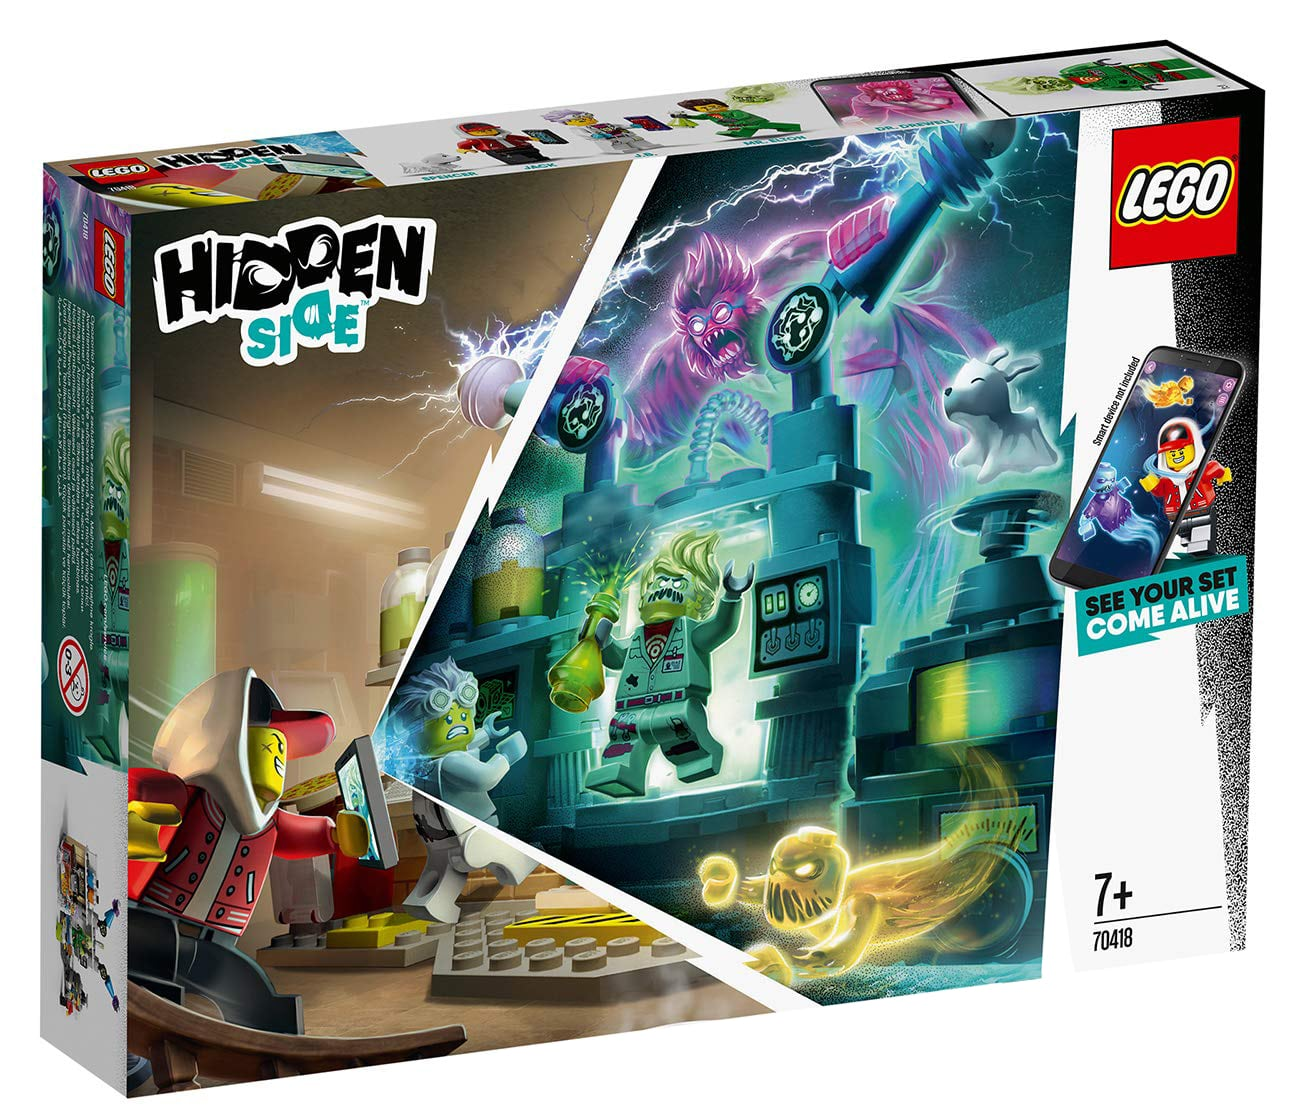 LEGO Hidden Side 70418 Labor Box